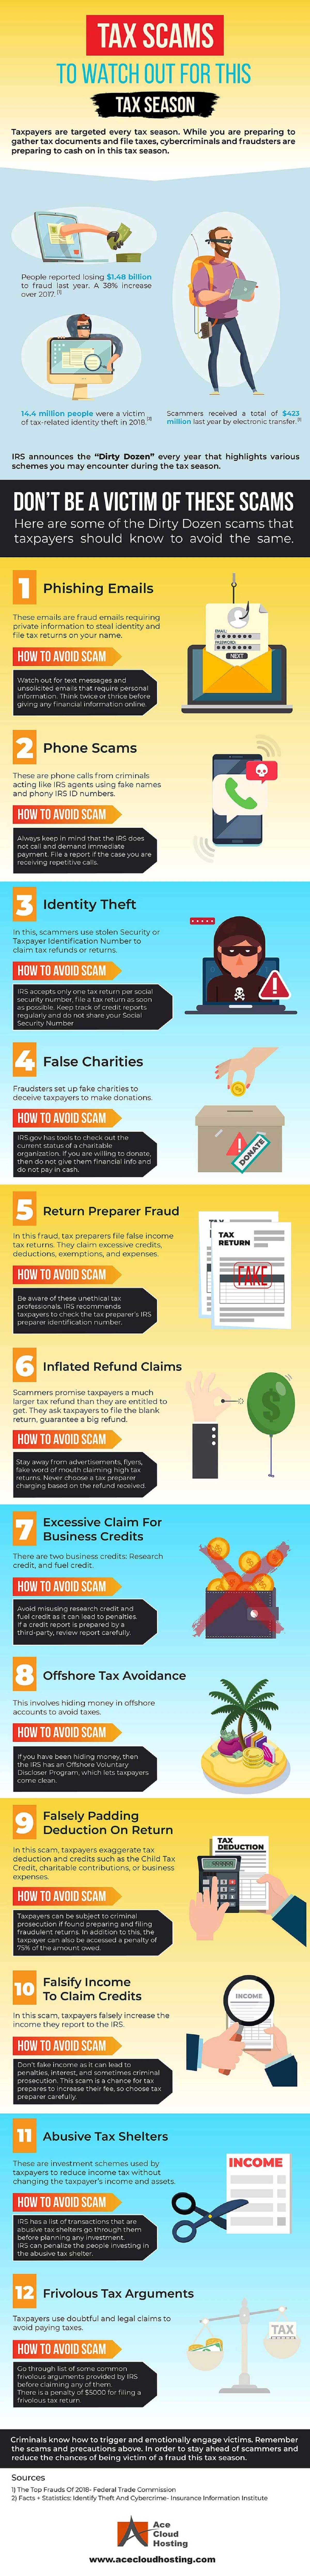 12-tax-scams-to-watch-out-this-tax-season-infographic